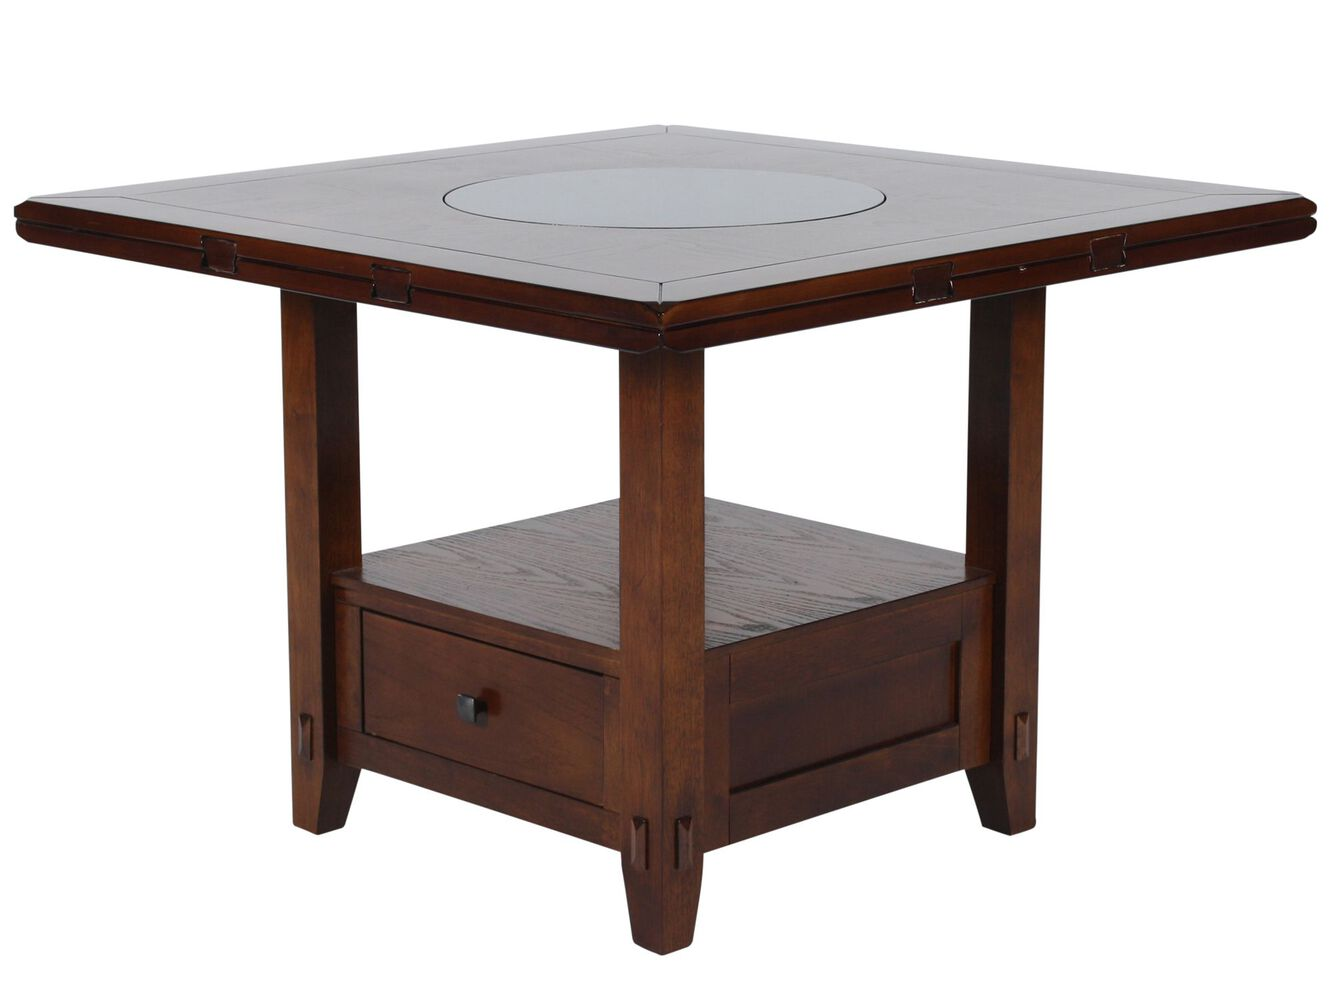 Country To Storage Pedestal Lazy Susan Dining Table In - Distressed square dining table